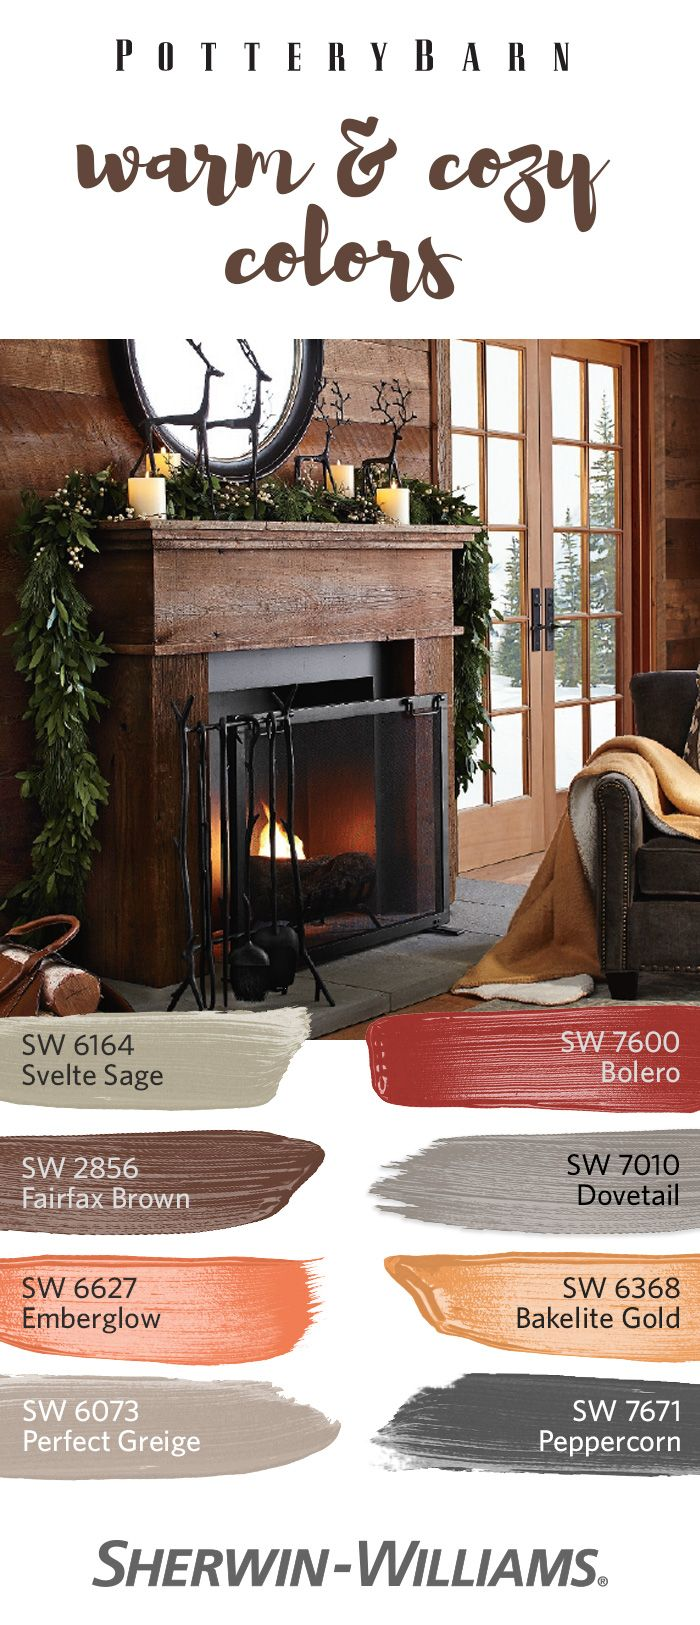 As The Weather Grows Chilly, We Start To Look For More Ways To Keep Things  Cozy. Warm Up Your Home With Rich Tones Like Bolero SW Fairfax Brown SW  2856 And ...